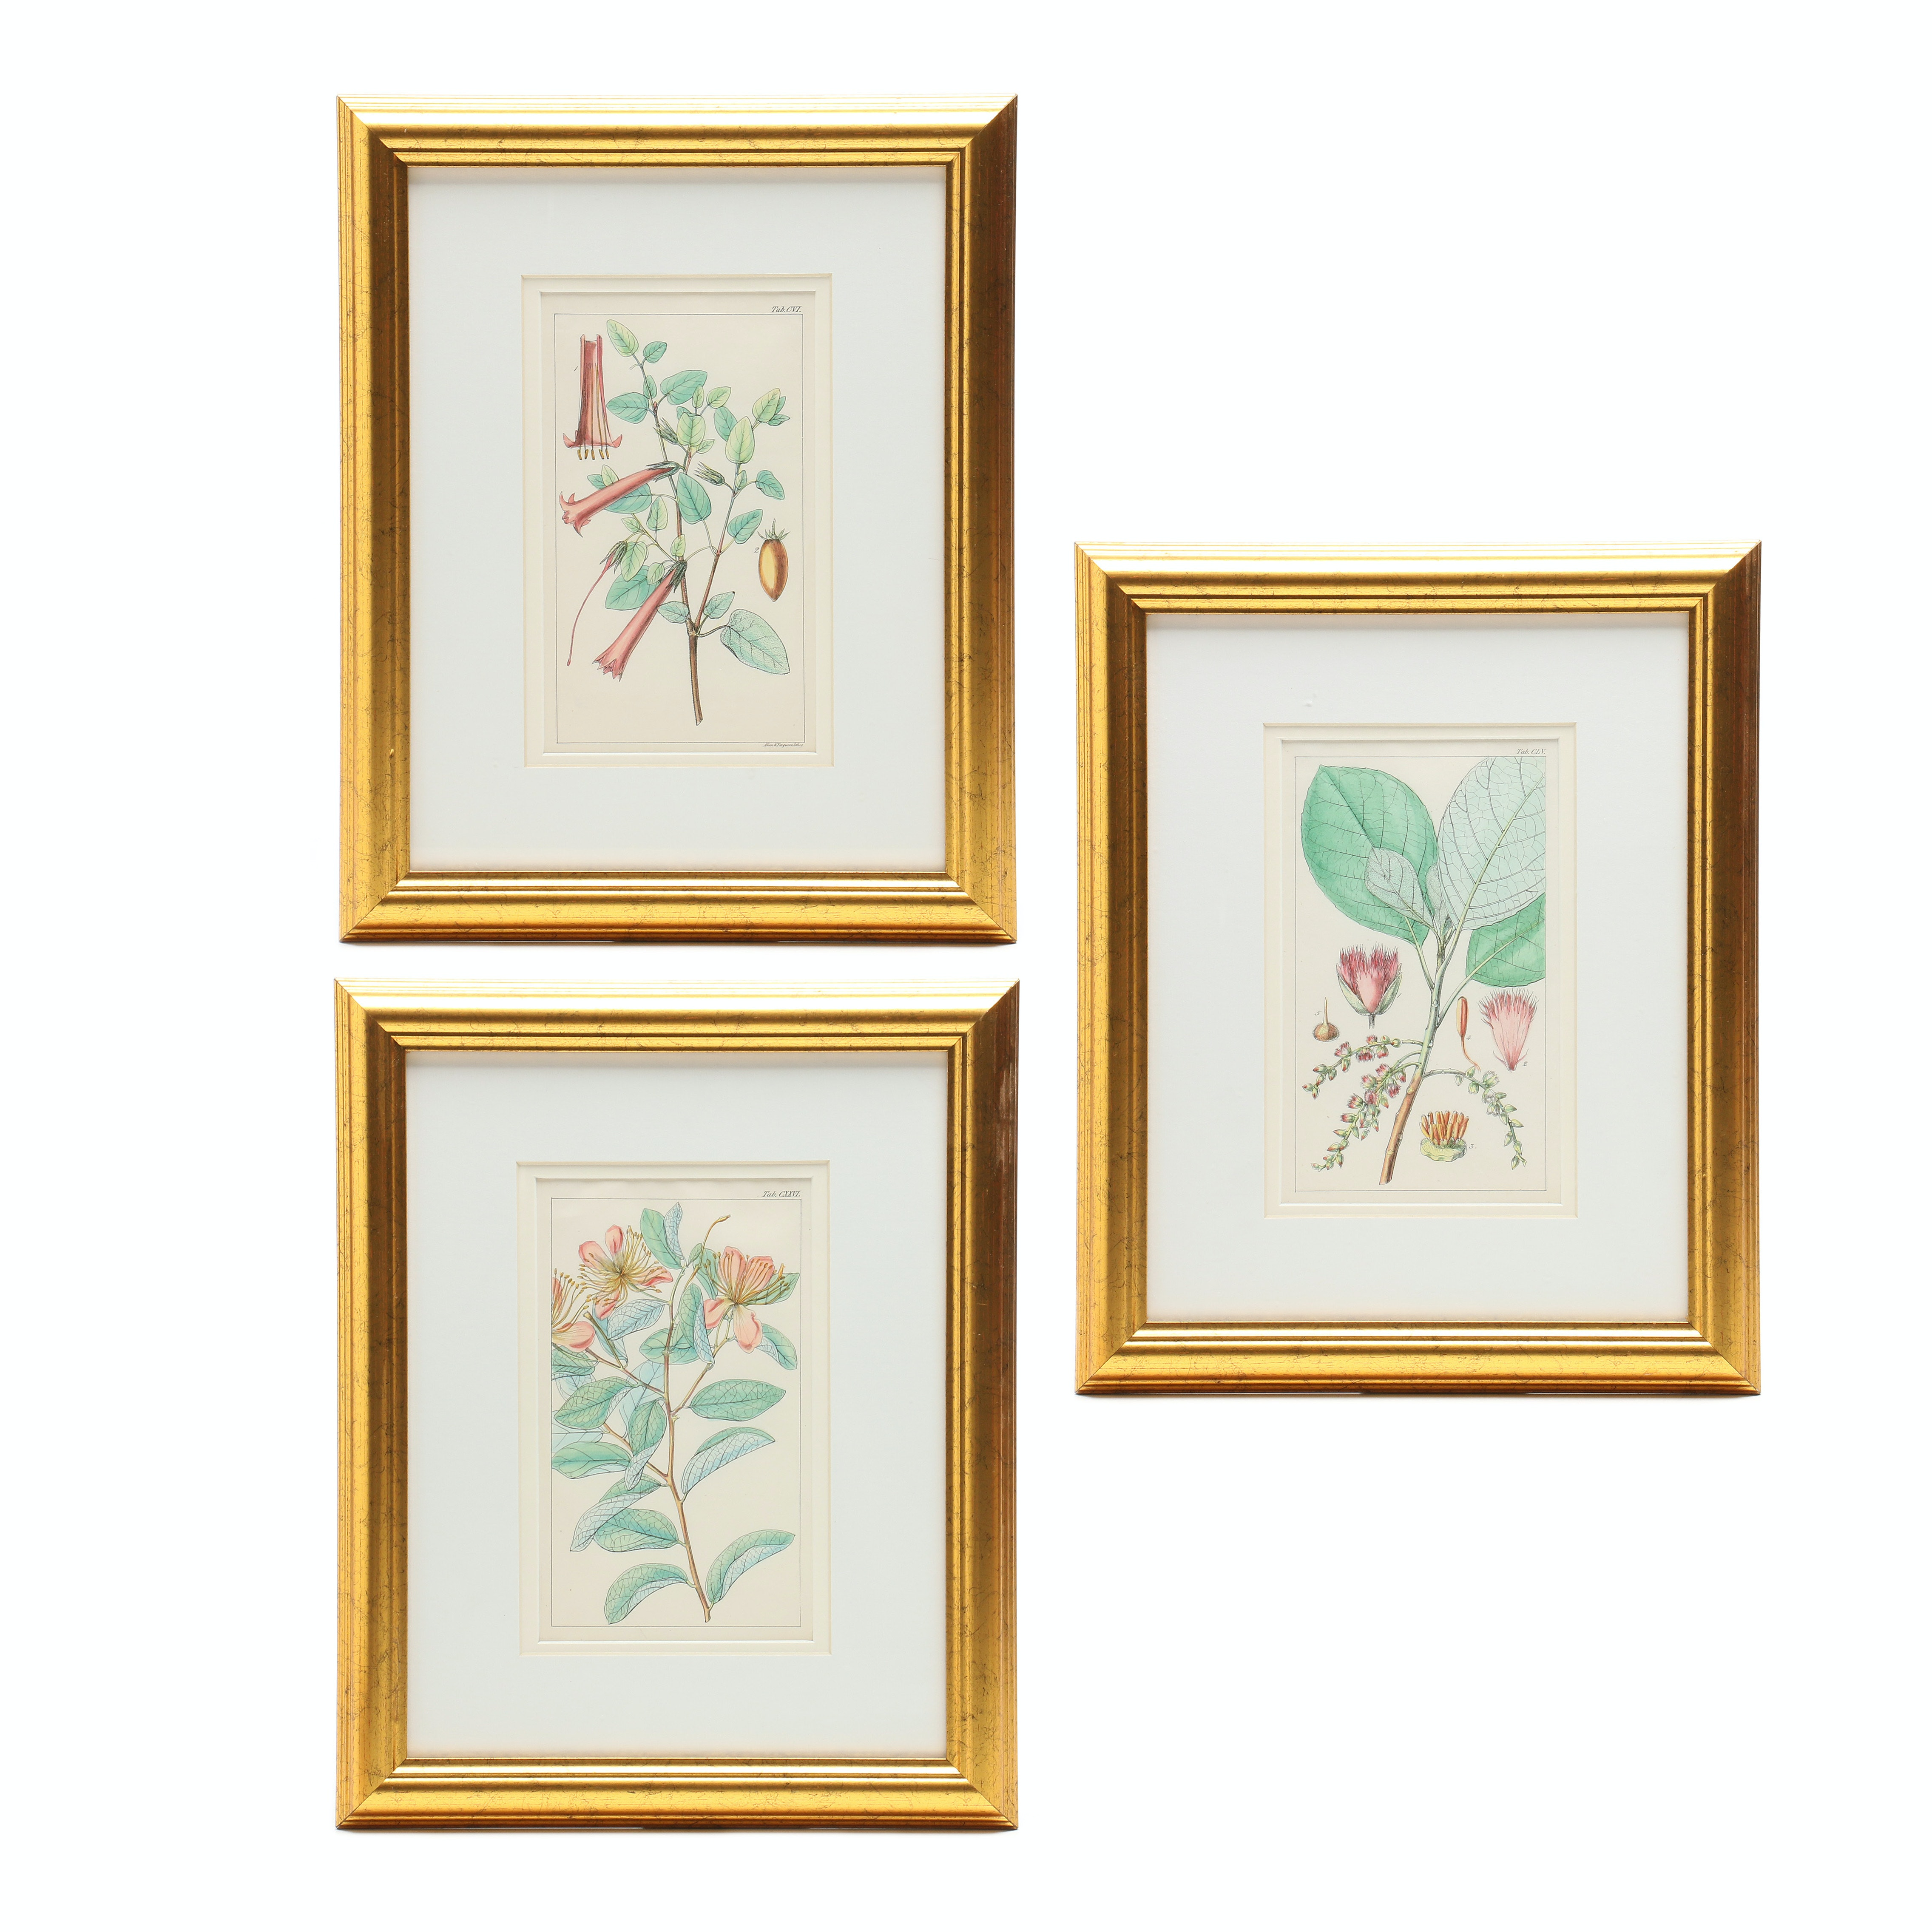 Three Hand-Colored Lithographs After Antique Botanical Prints